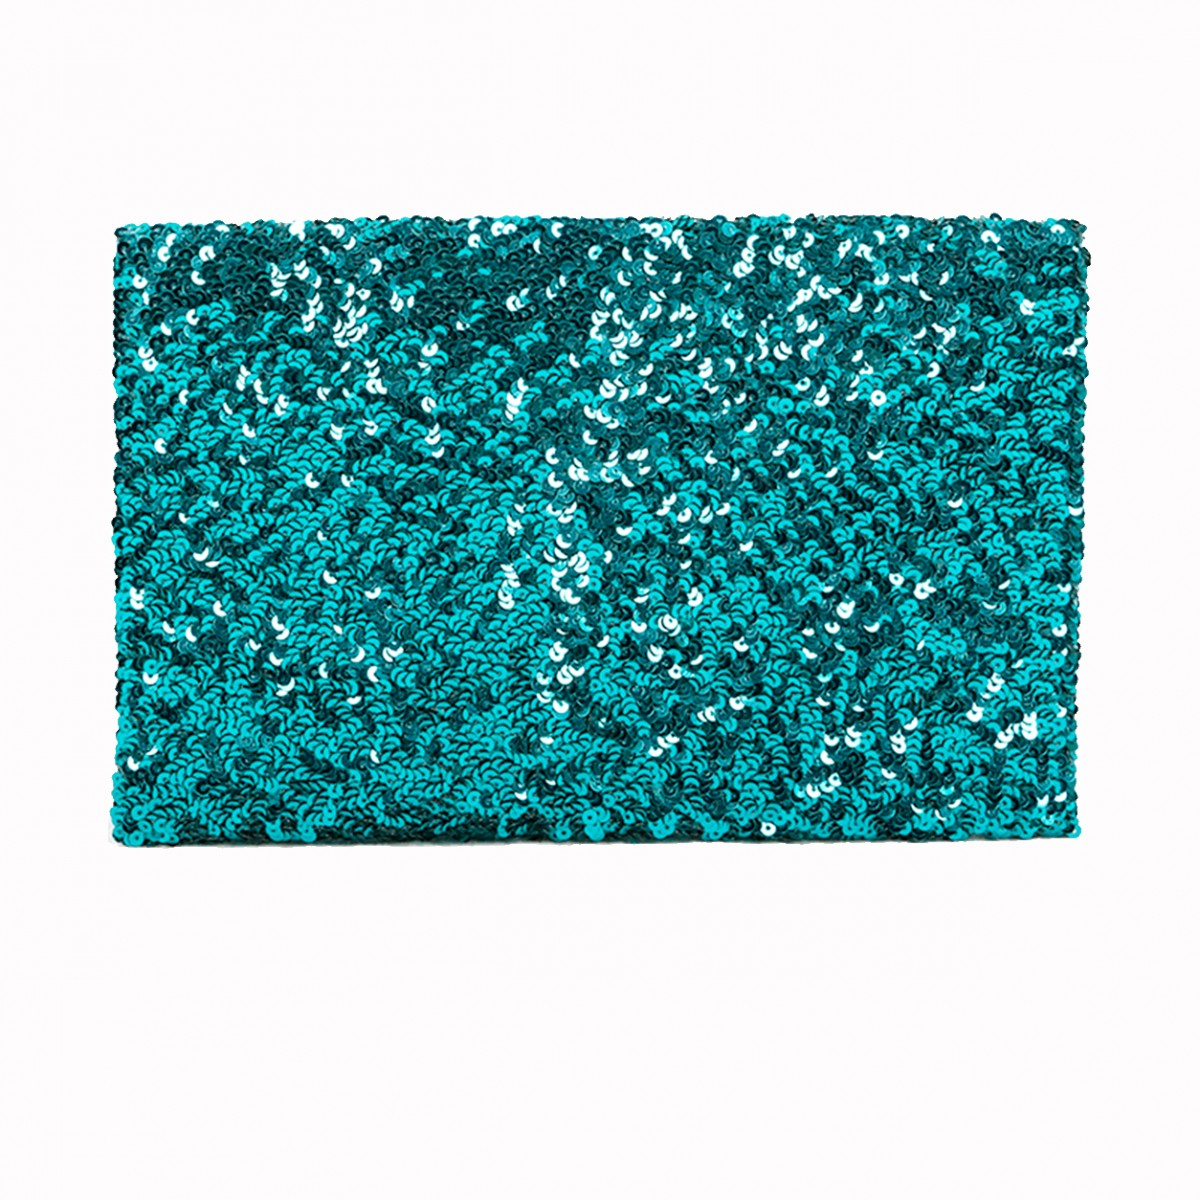 Sequins Clutch Bag - Teal